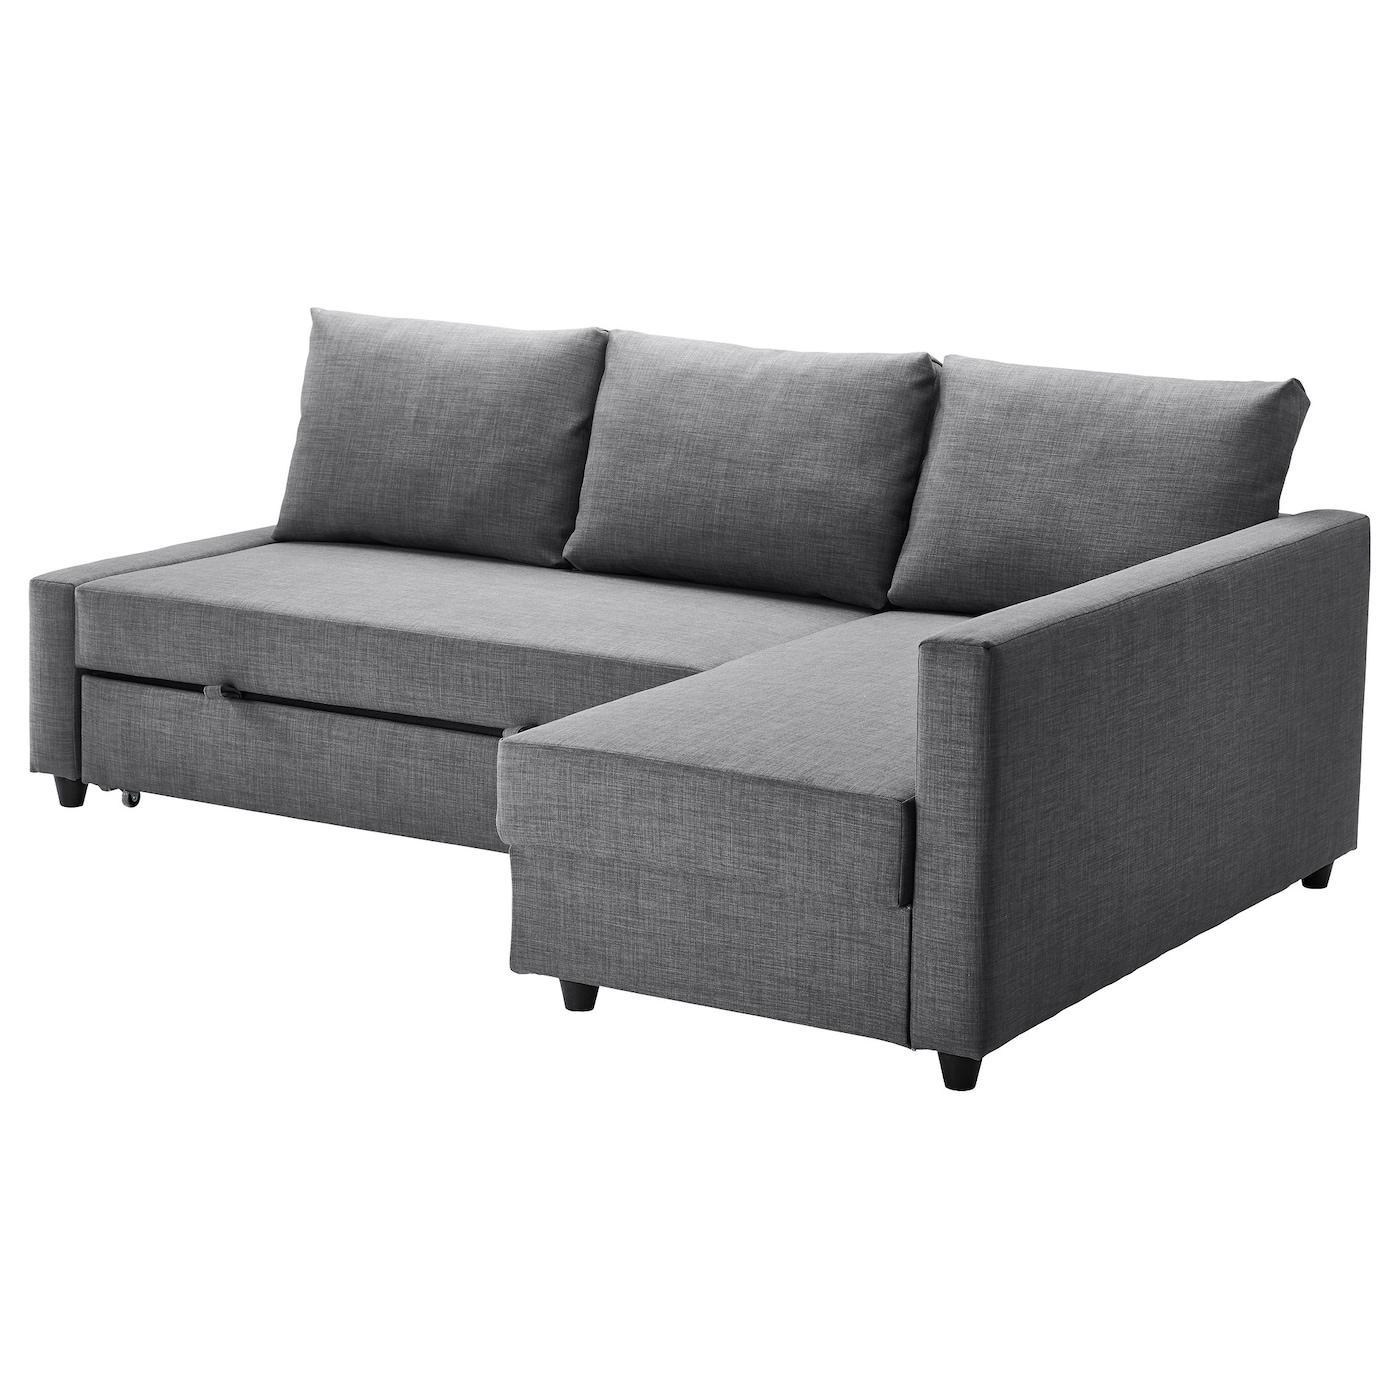 friheten corner sofa bed with storage skiftebo dark grey ikea rh ikea com Sofa Bed Costco Sofa Beds for Small Spaces